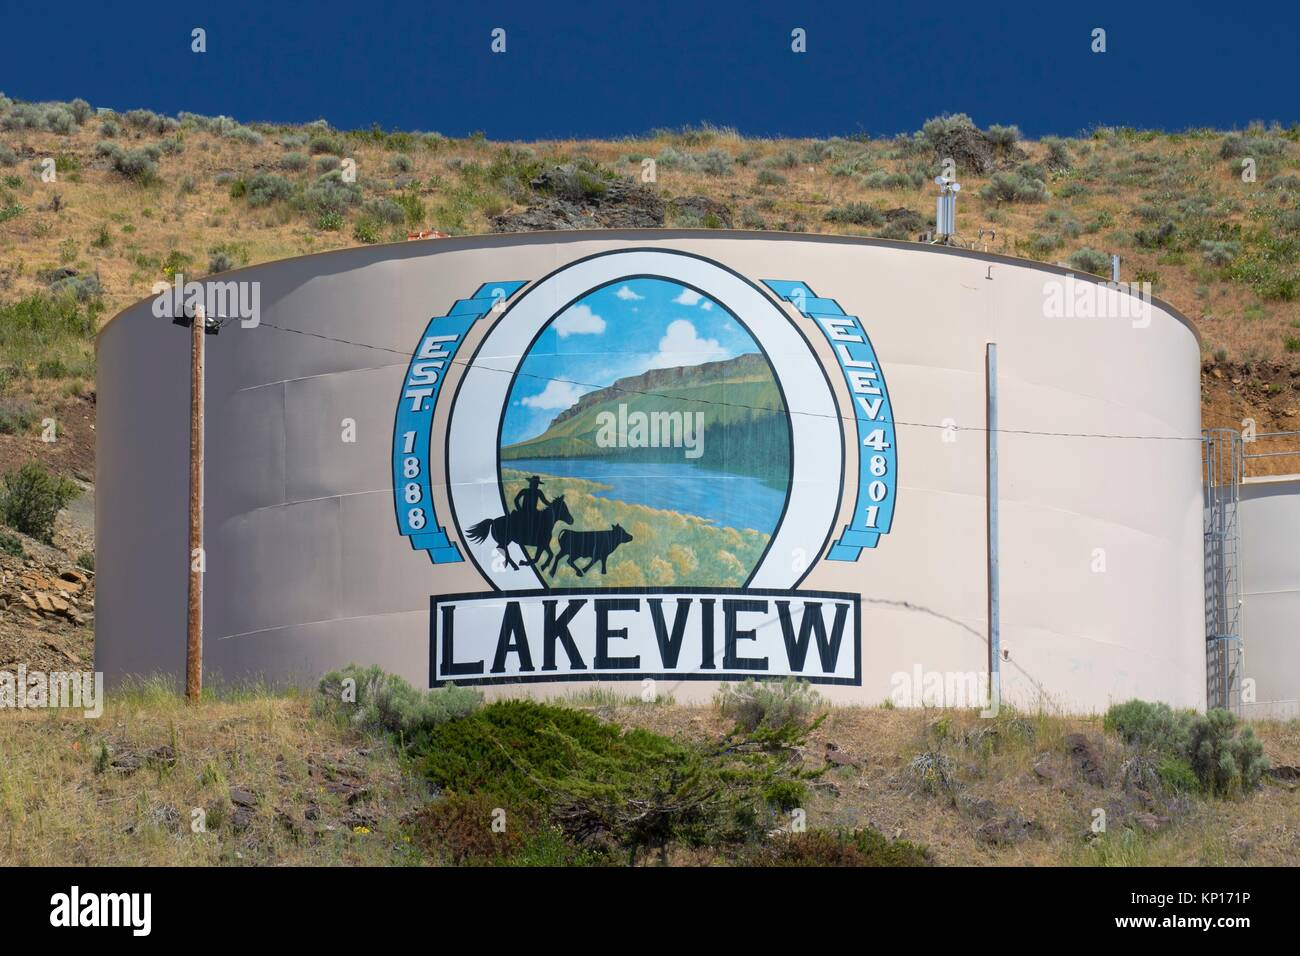 Mural, Lakeview, Lake County Fairgrounds, Oregon Outback Scenic Byway, Oregon. - Stock Image